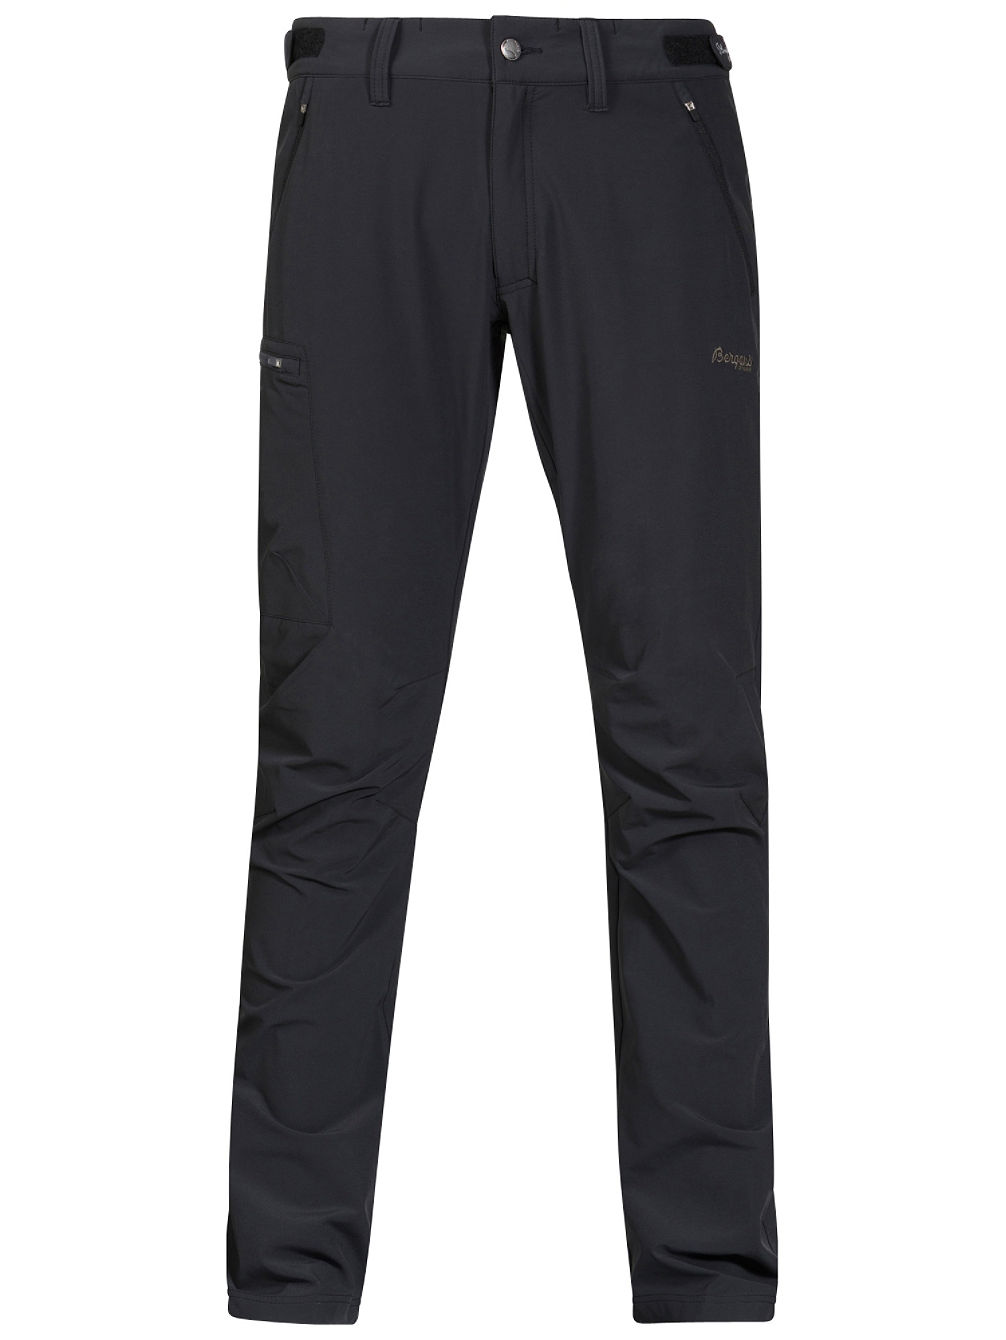 Torfinnstind Outdoor Pants